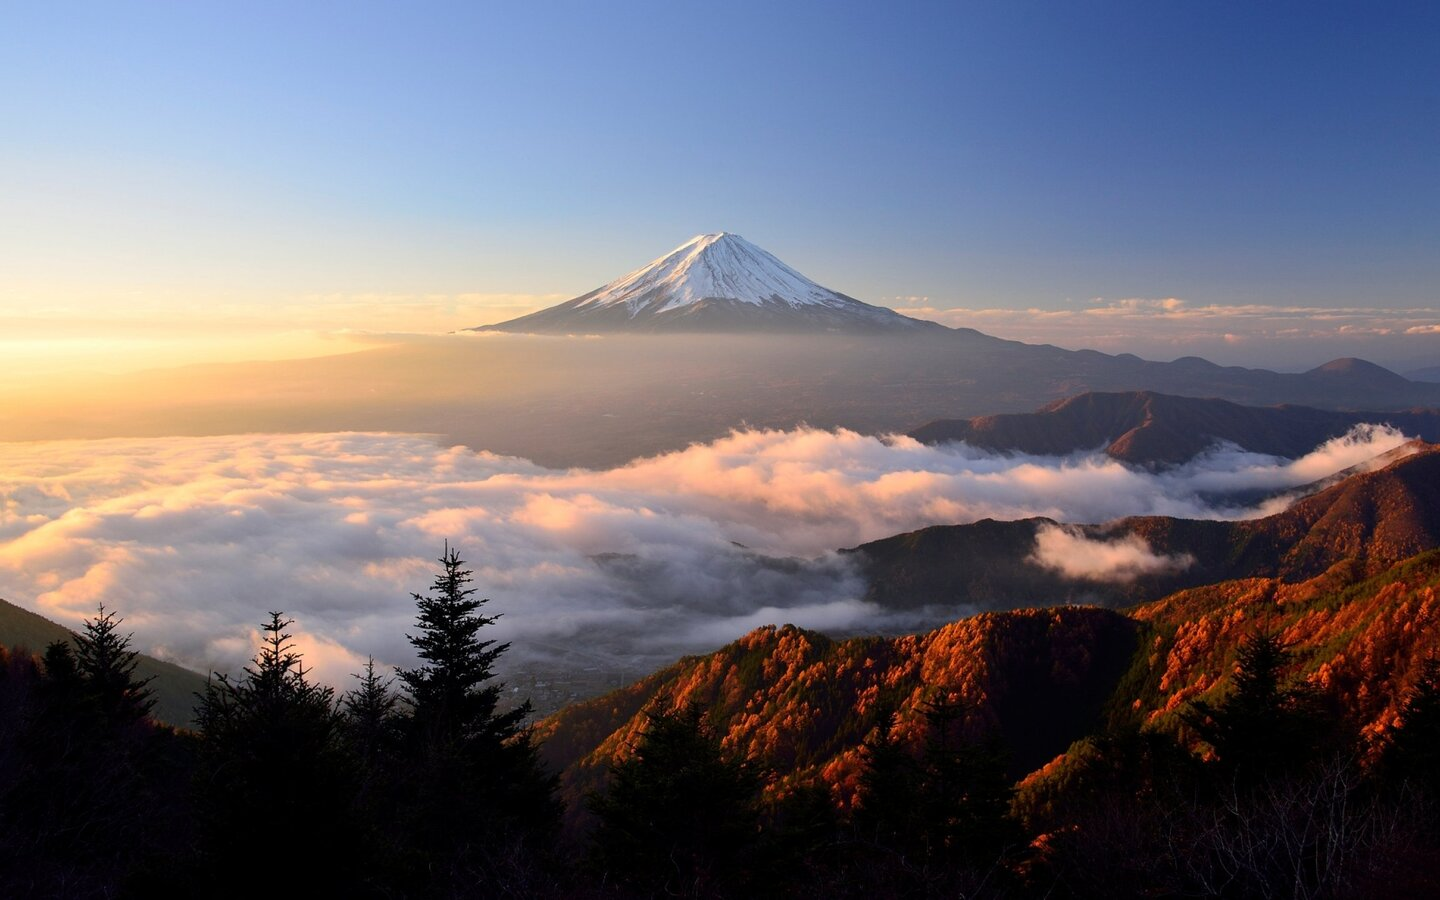 1440x900 Mount Fuji Hd 1440x900 Resolution Hd 4k Wallpapers